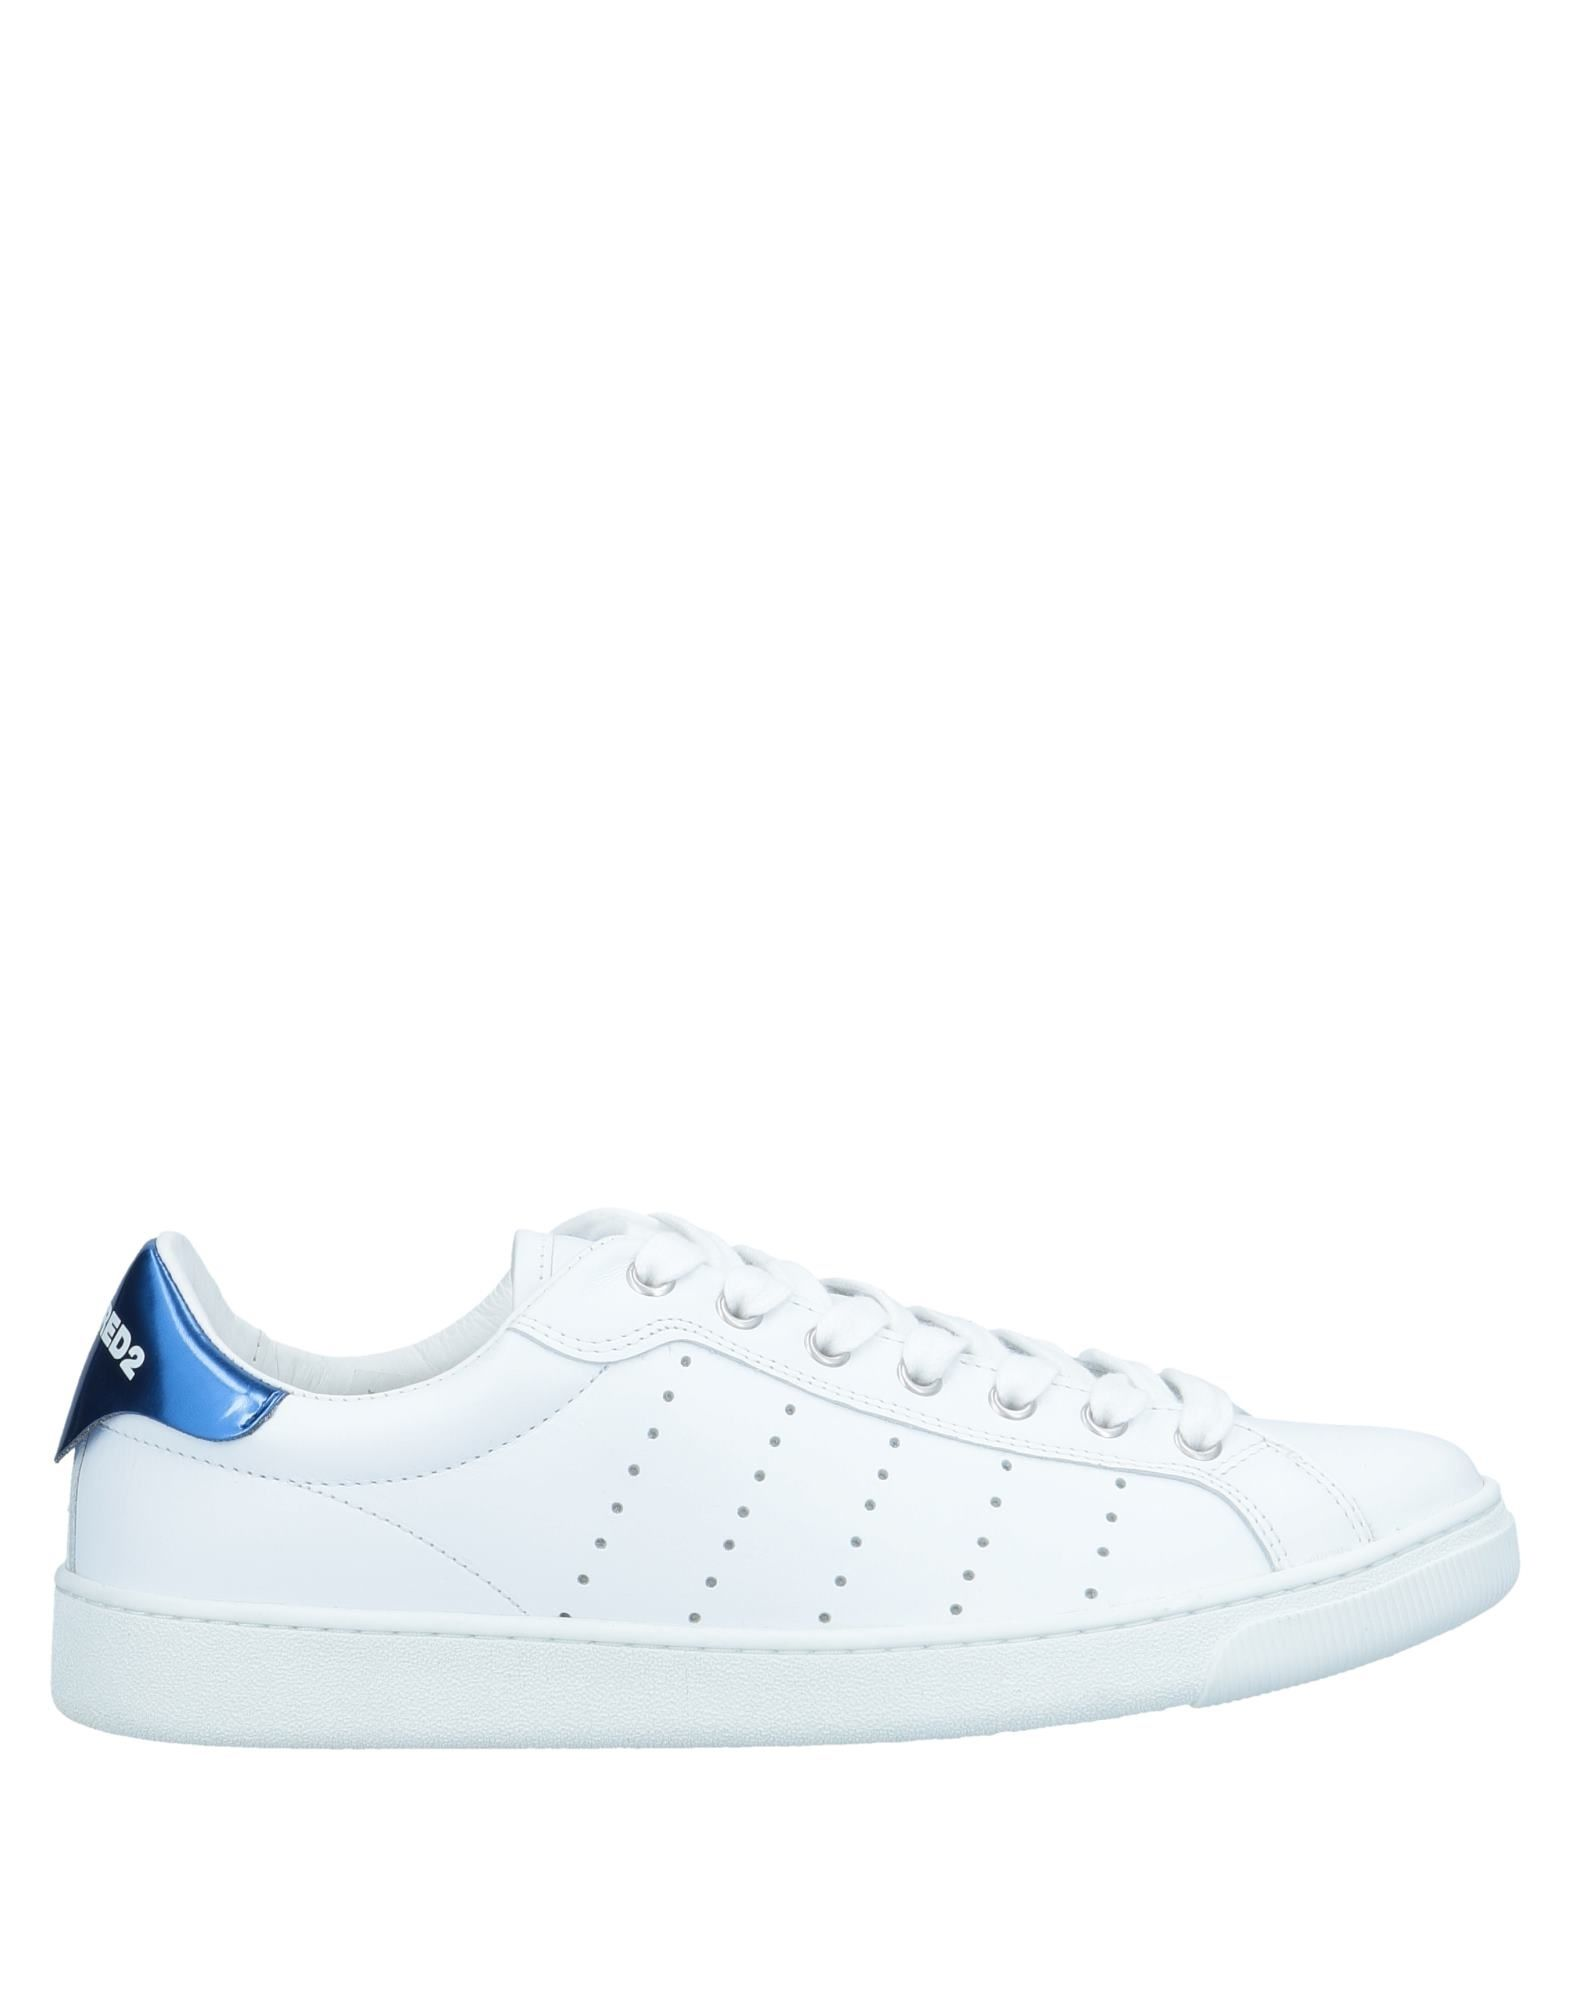 Dsquared2 Sneakers - Women Dsquared2 Sneakers online on 11558569GN  United Kingdom - 11558569GN on 4ca421